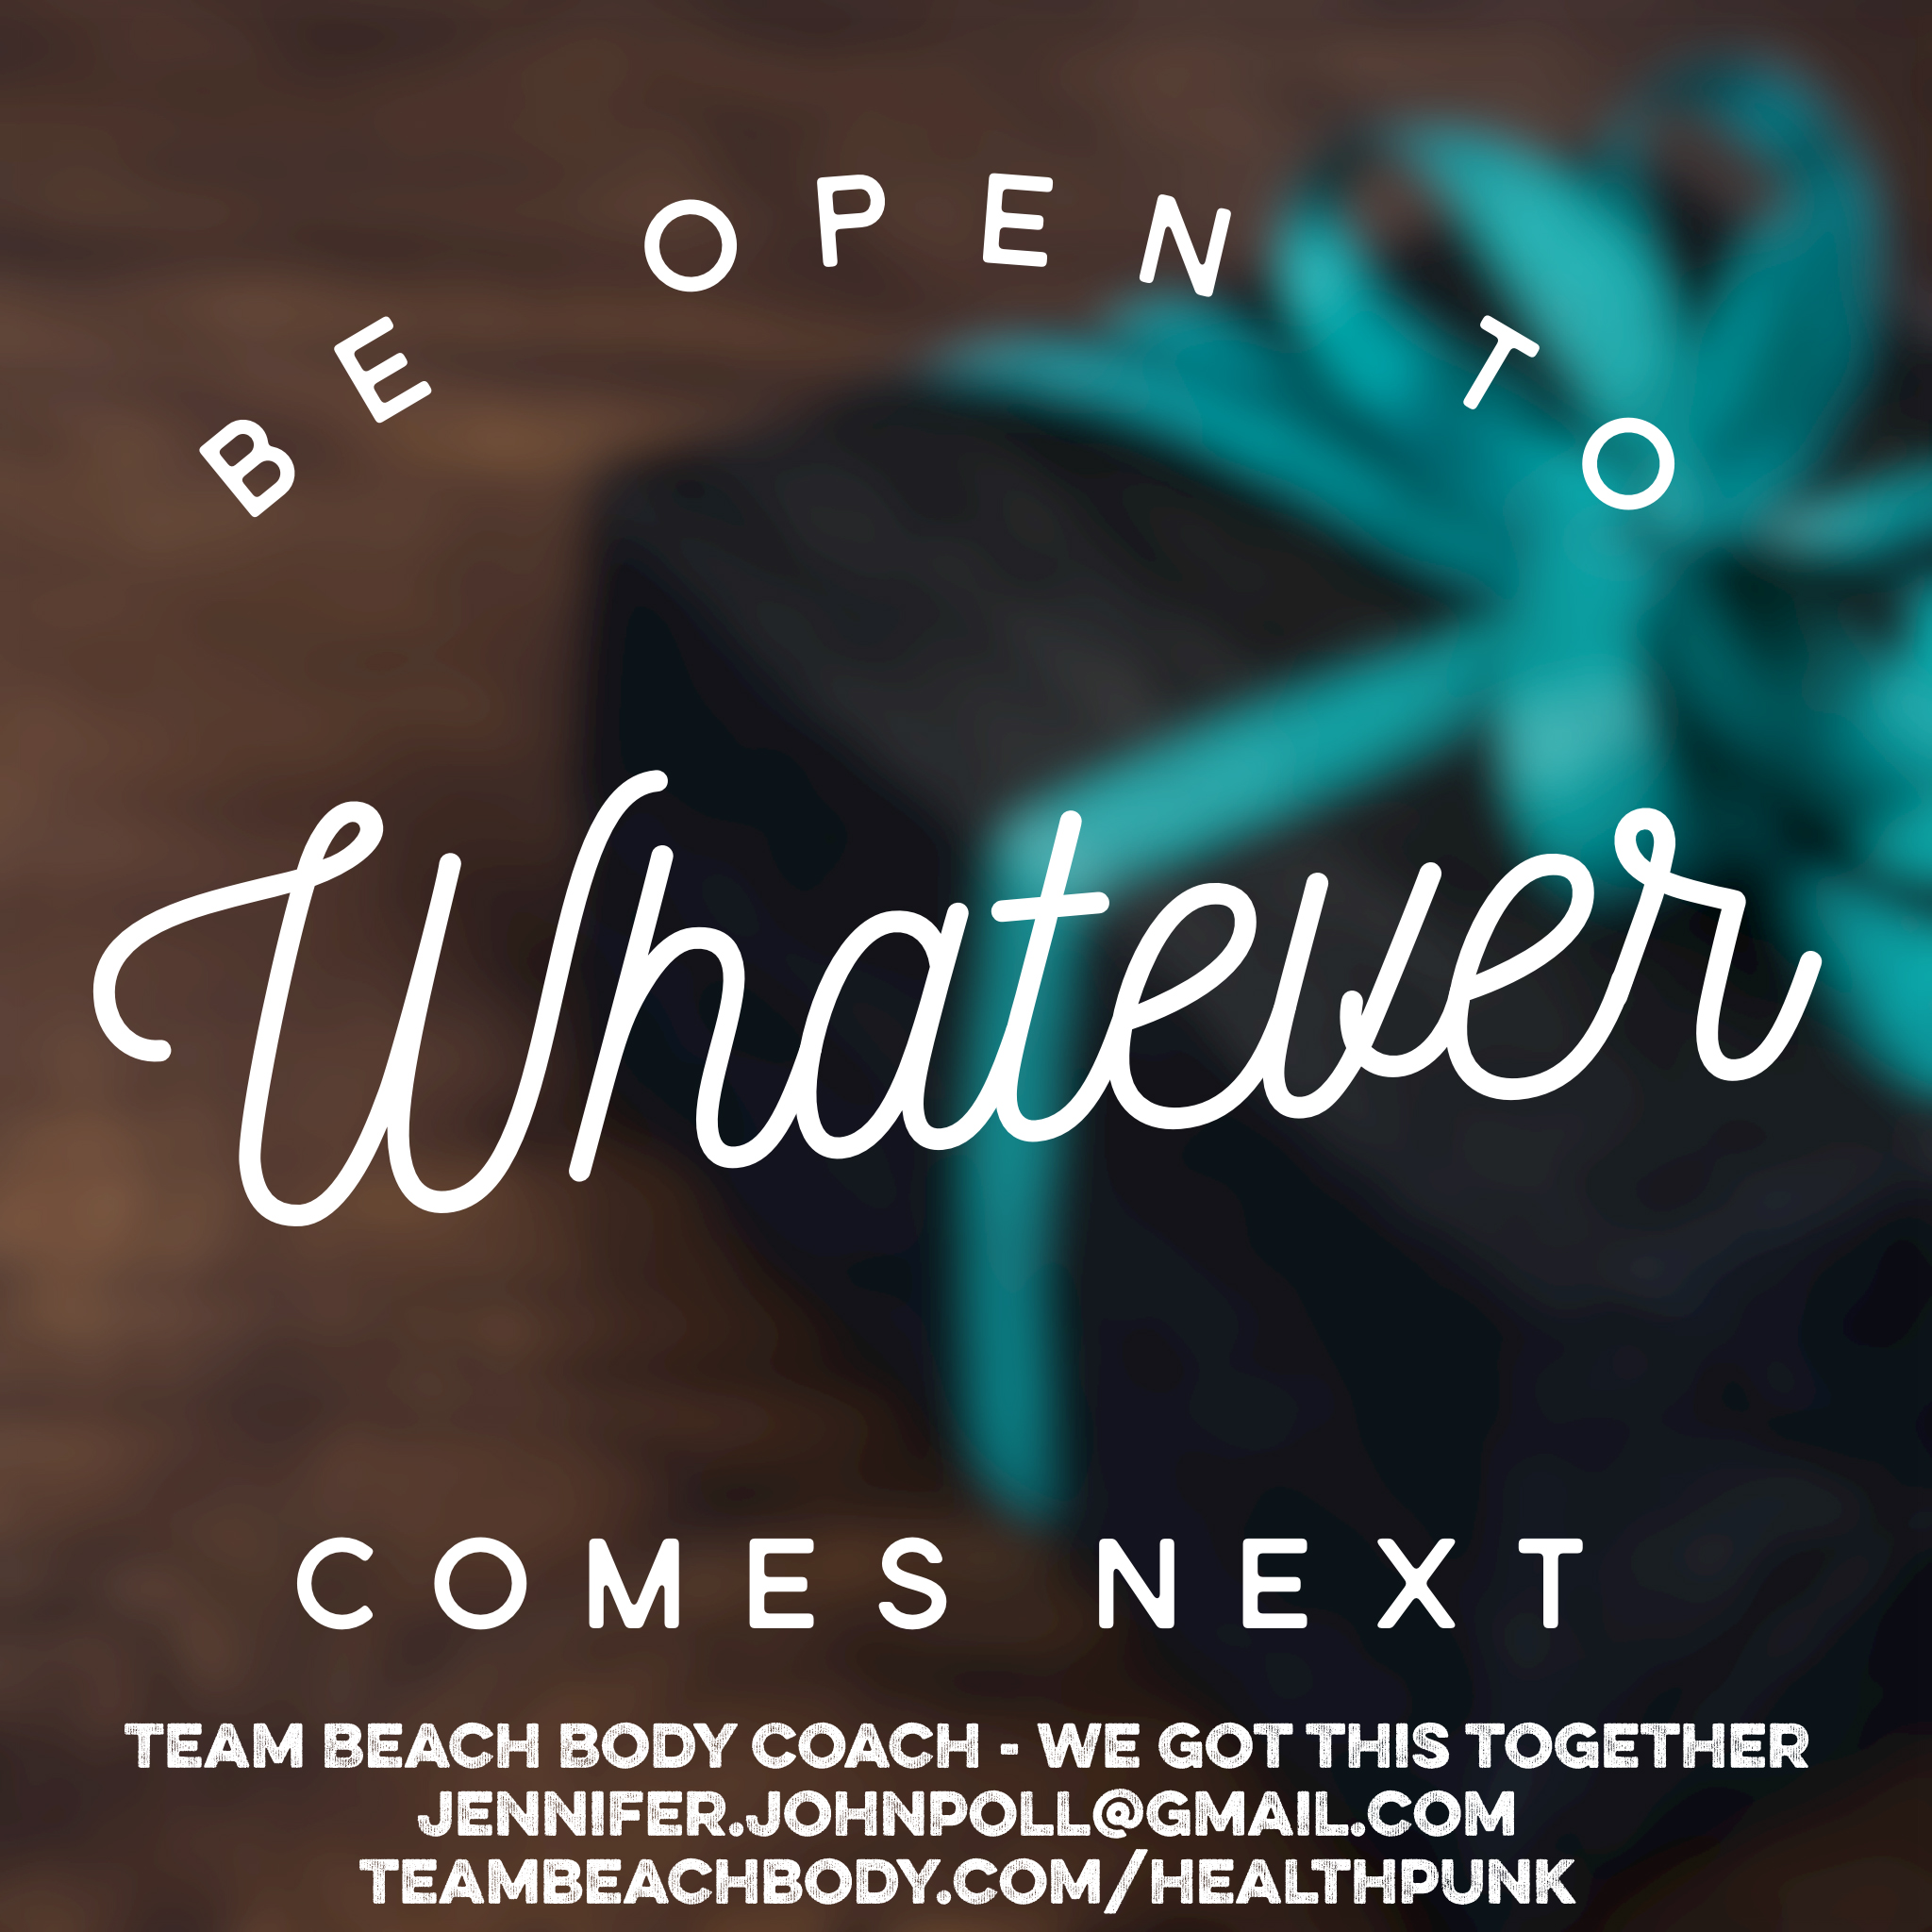 Team Beachboy Coach - We got this together!